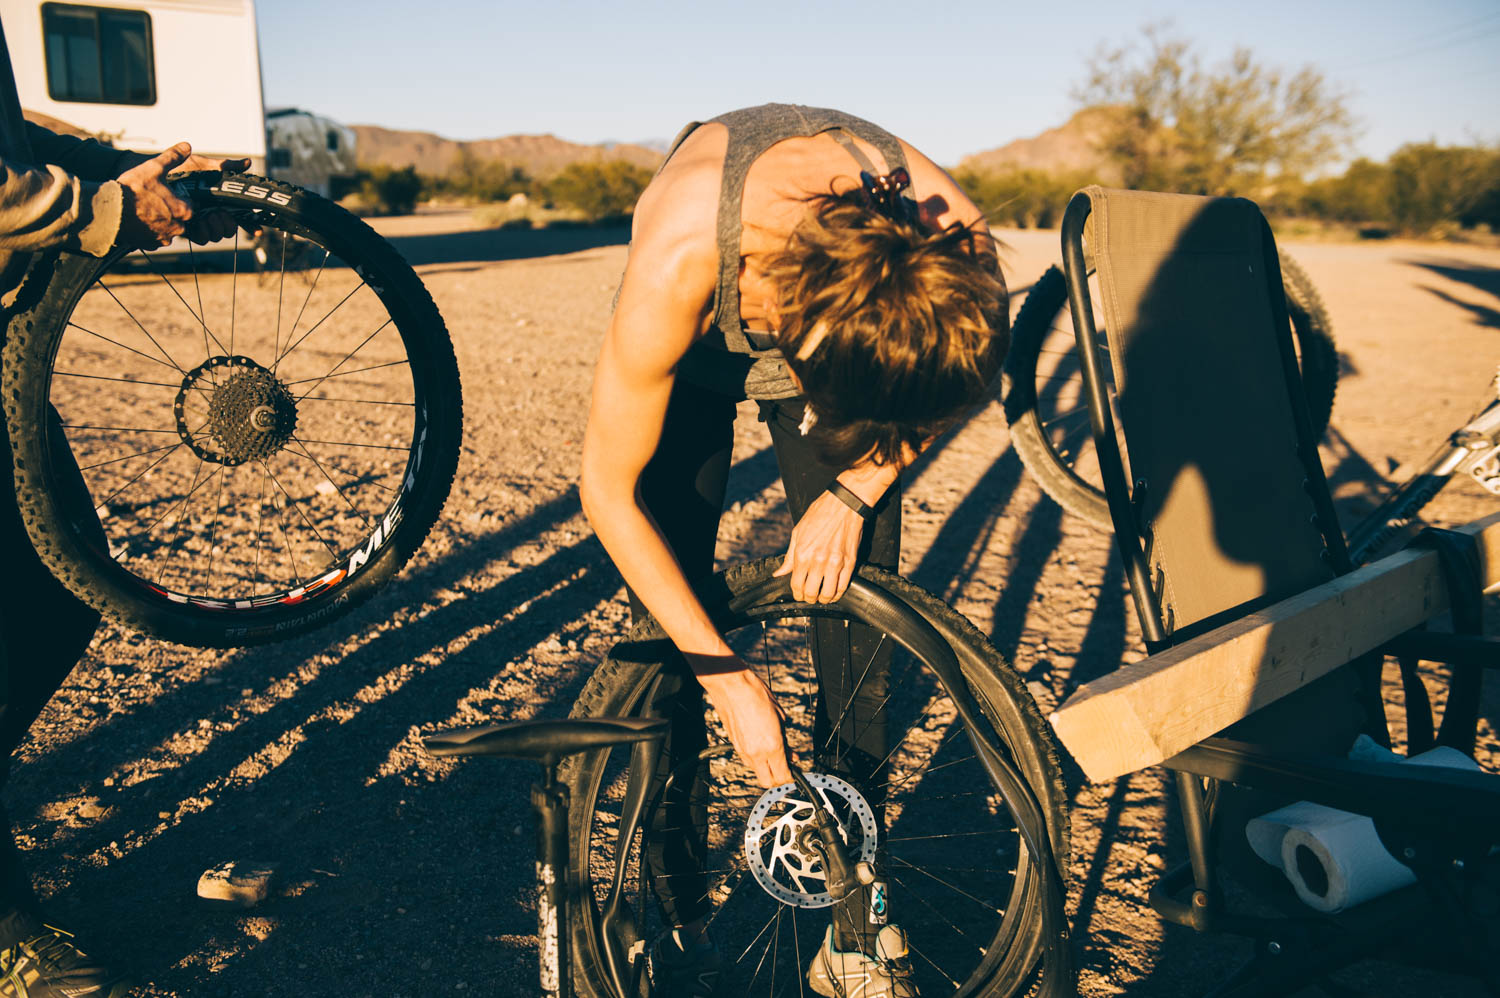 Living frugally also means learning to do your own bike (and bus!) mechanics!